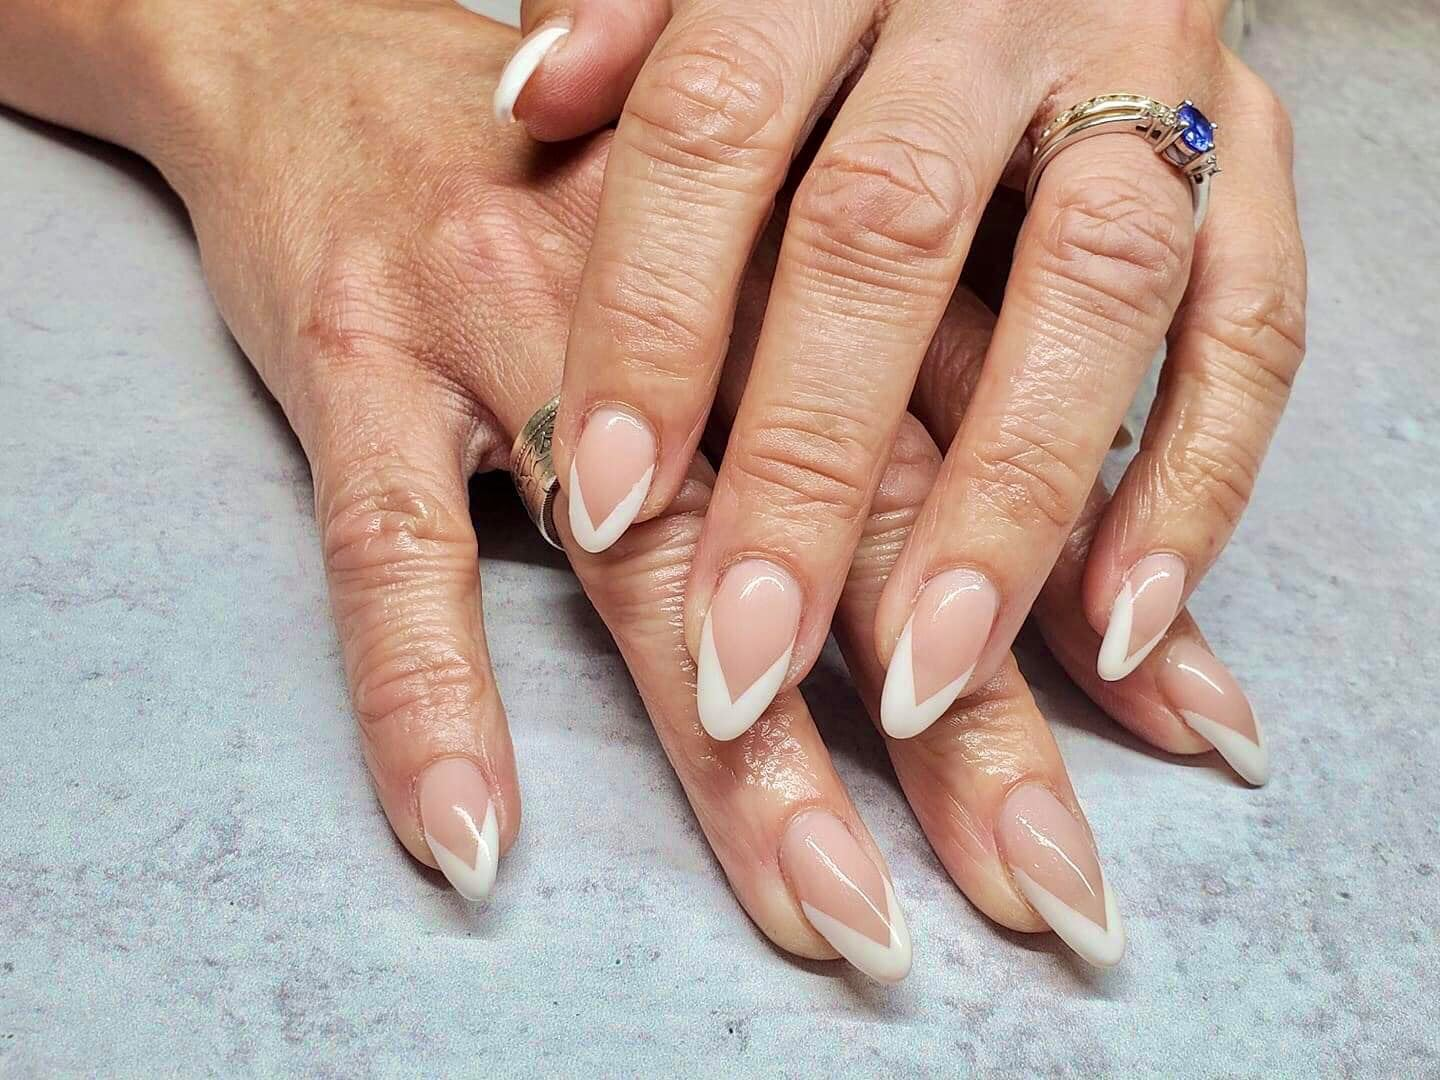 https://0201.nccdn.net/4_2/000/000/020/0be/updated-nails-8.jpg